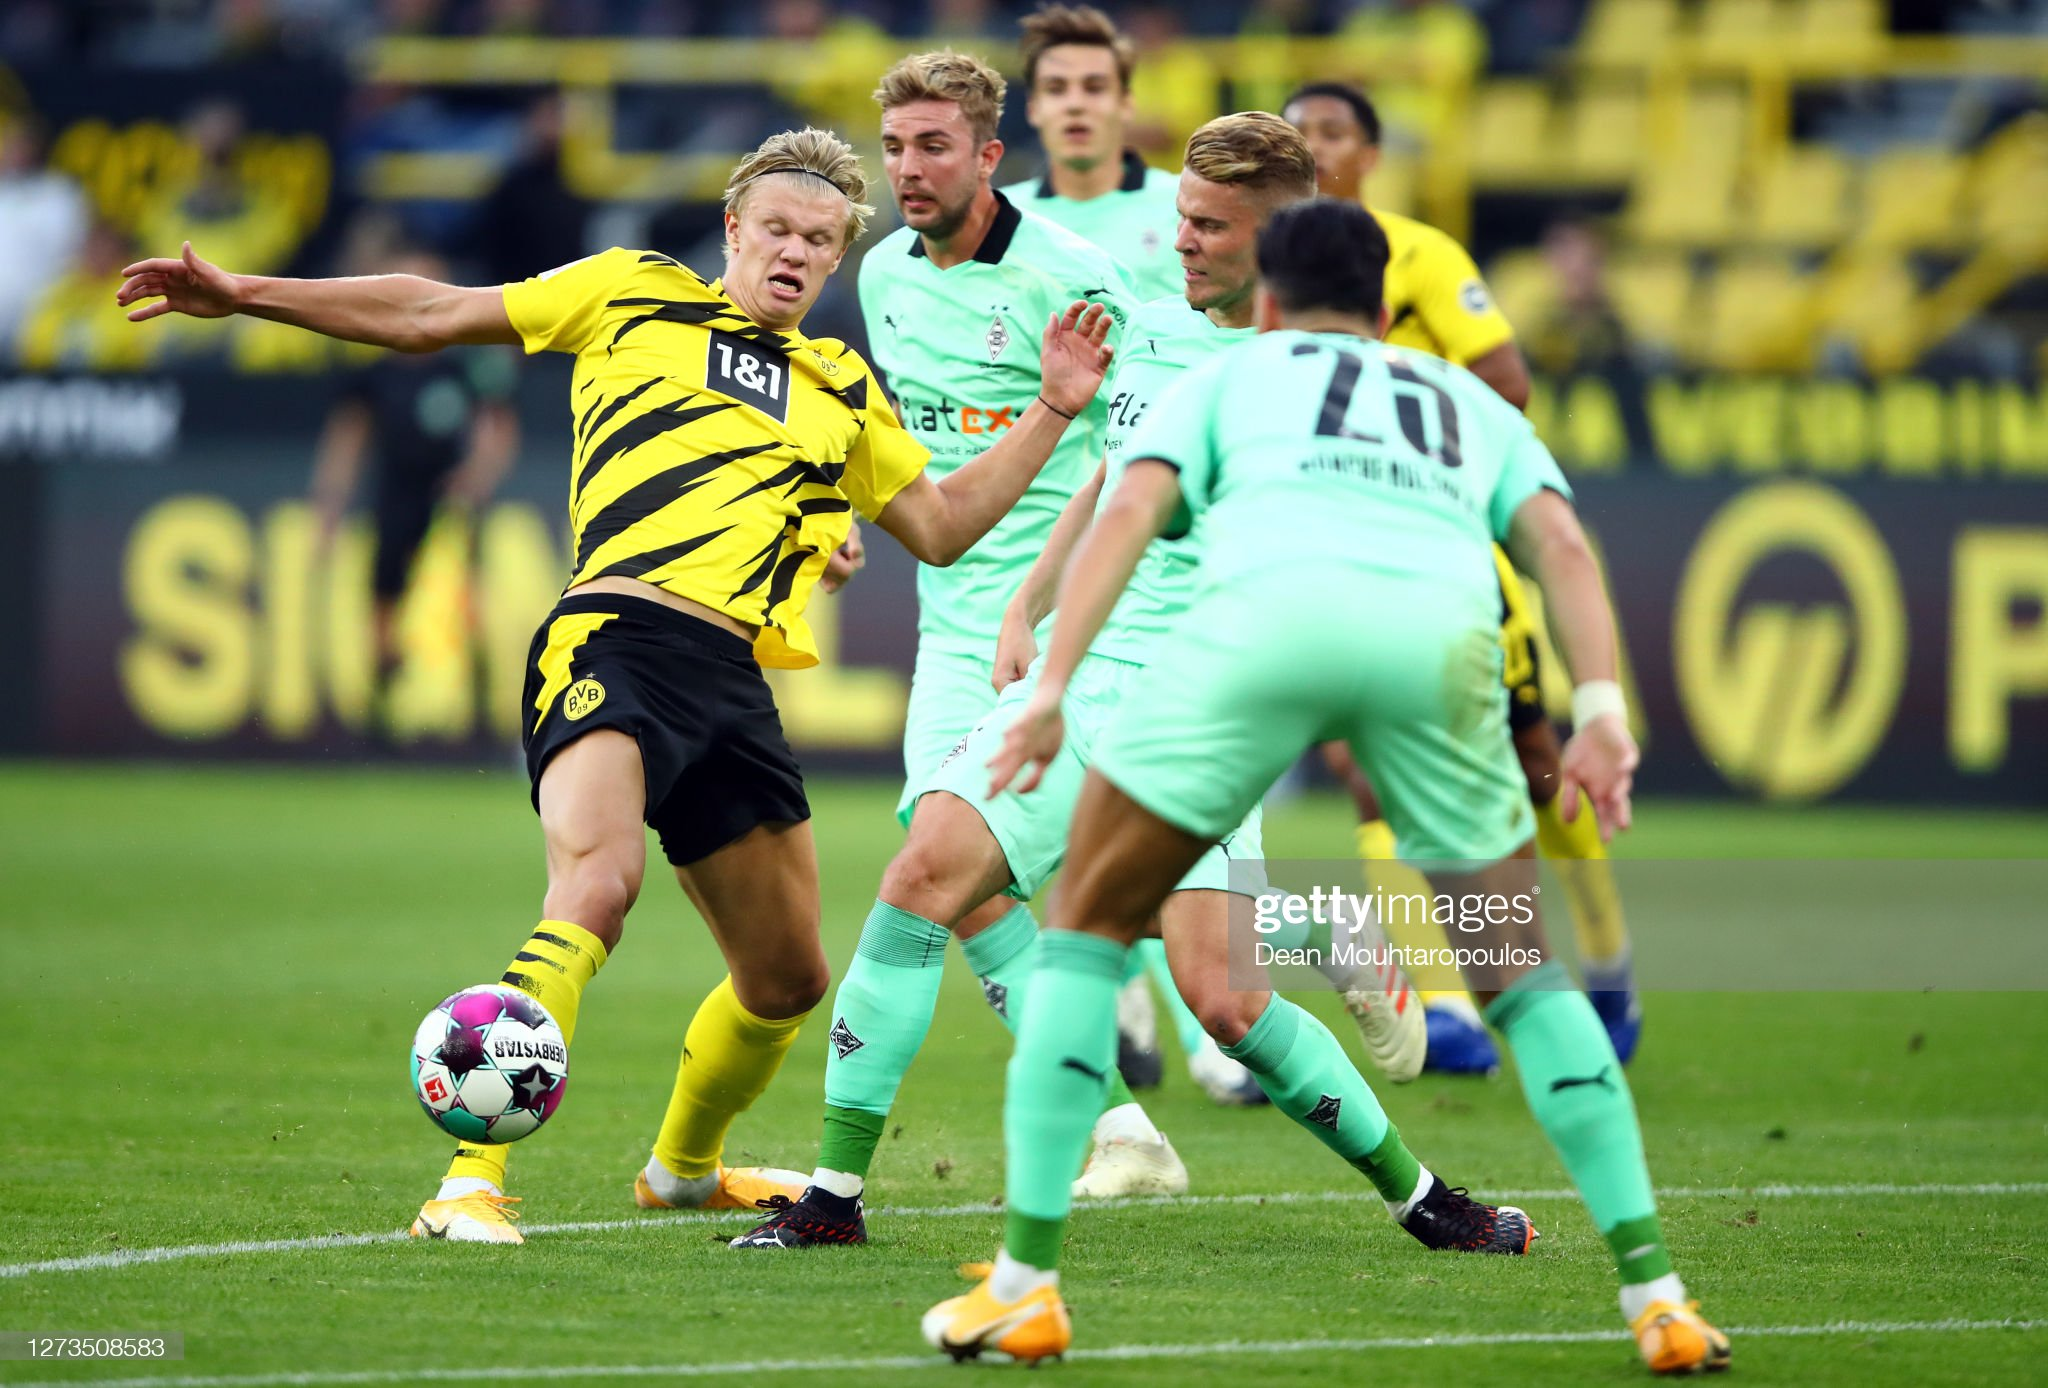 Monchengladbach vs Dortmund Preview, prediction and odds